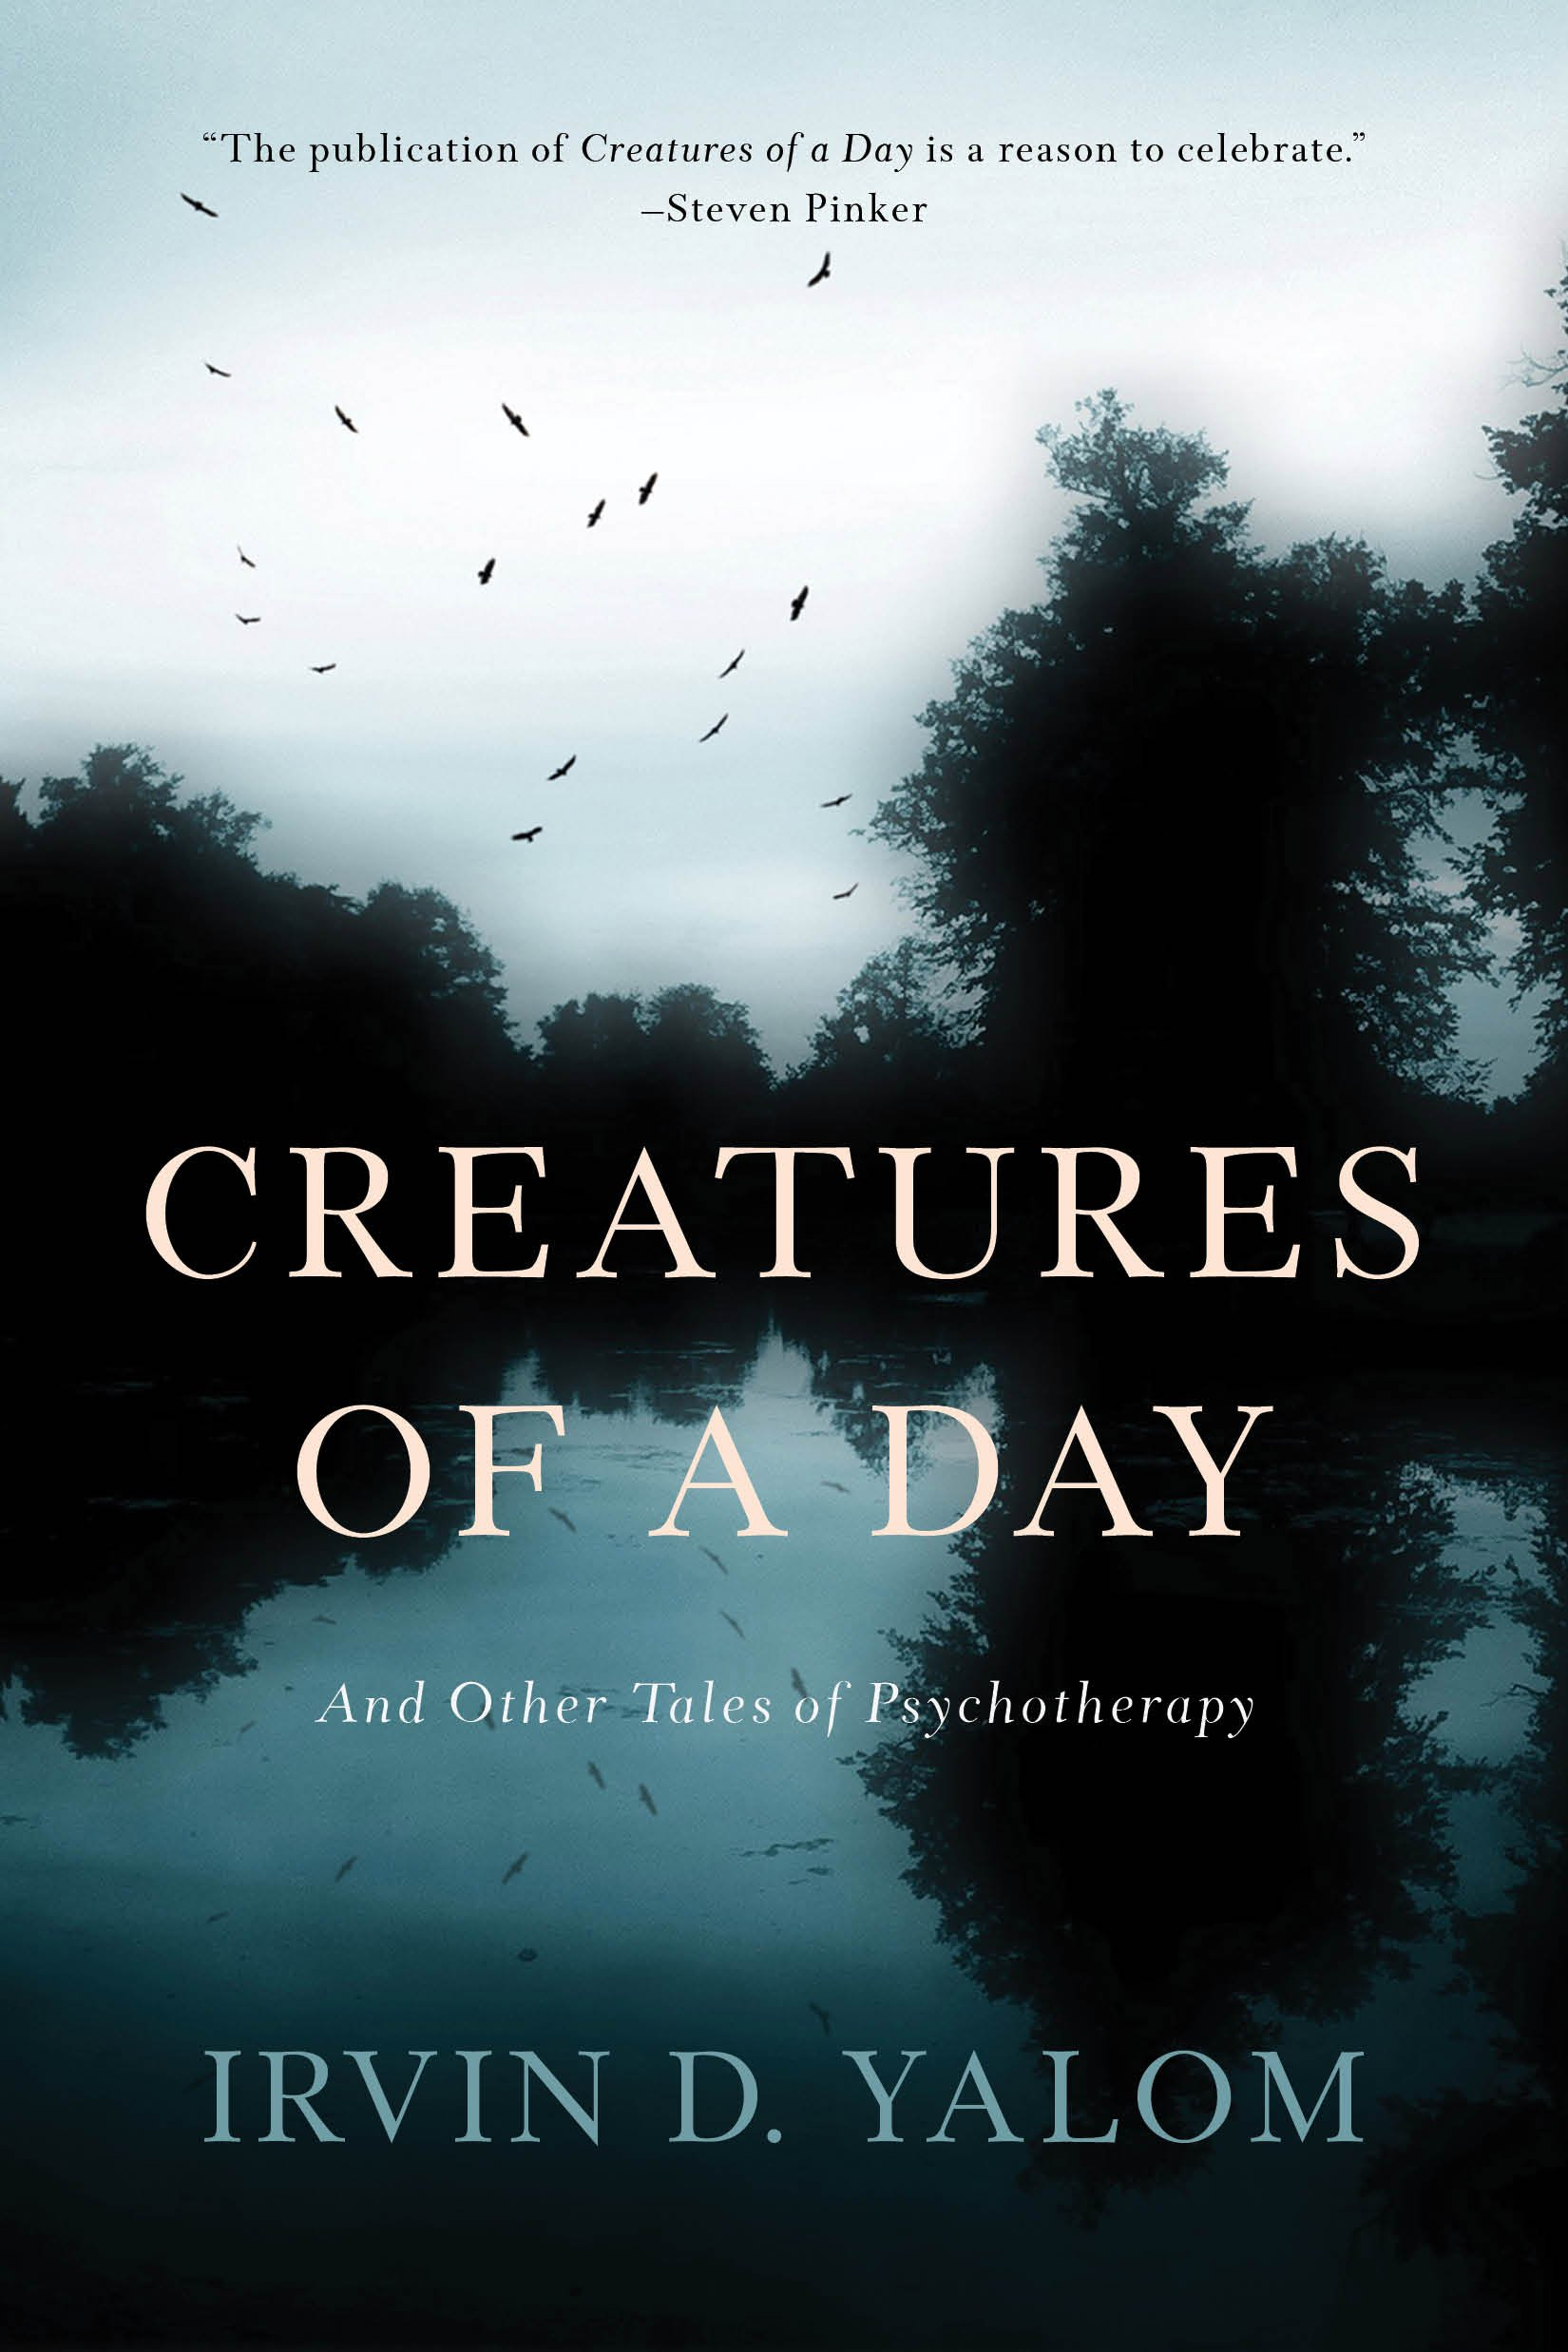 Creatures of a day and other tales of psychotherapy irvin d creatures of a day and other tales of psychotherapy irvin d yalom 9780465097432 amazon books negle Choice Image